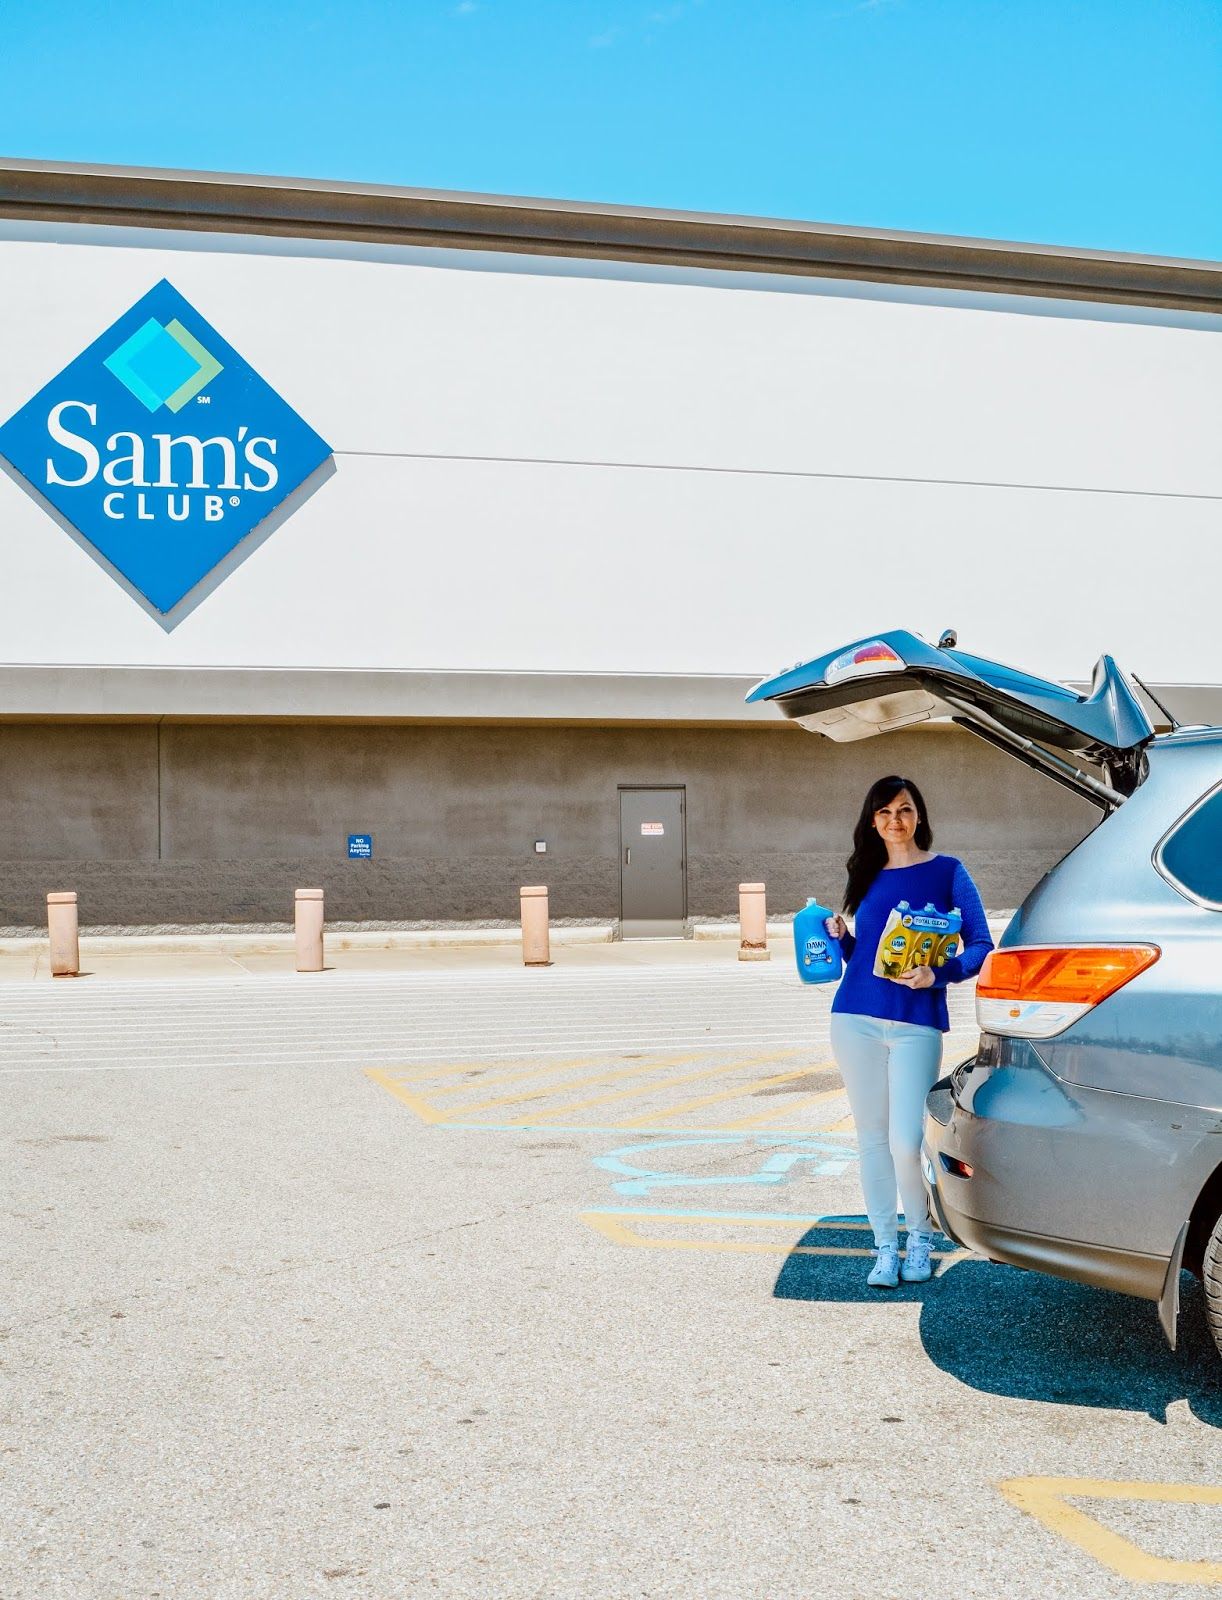 Dawn Sam's Club